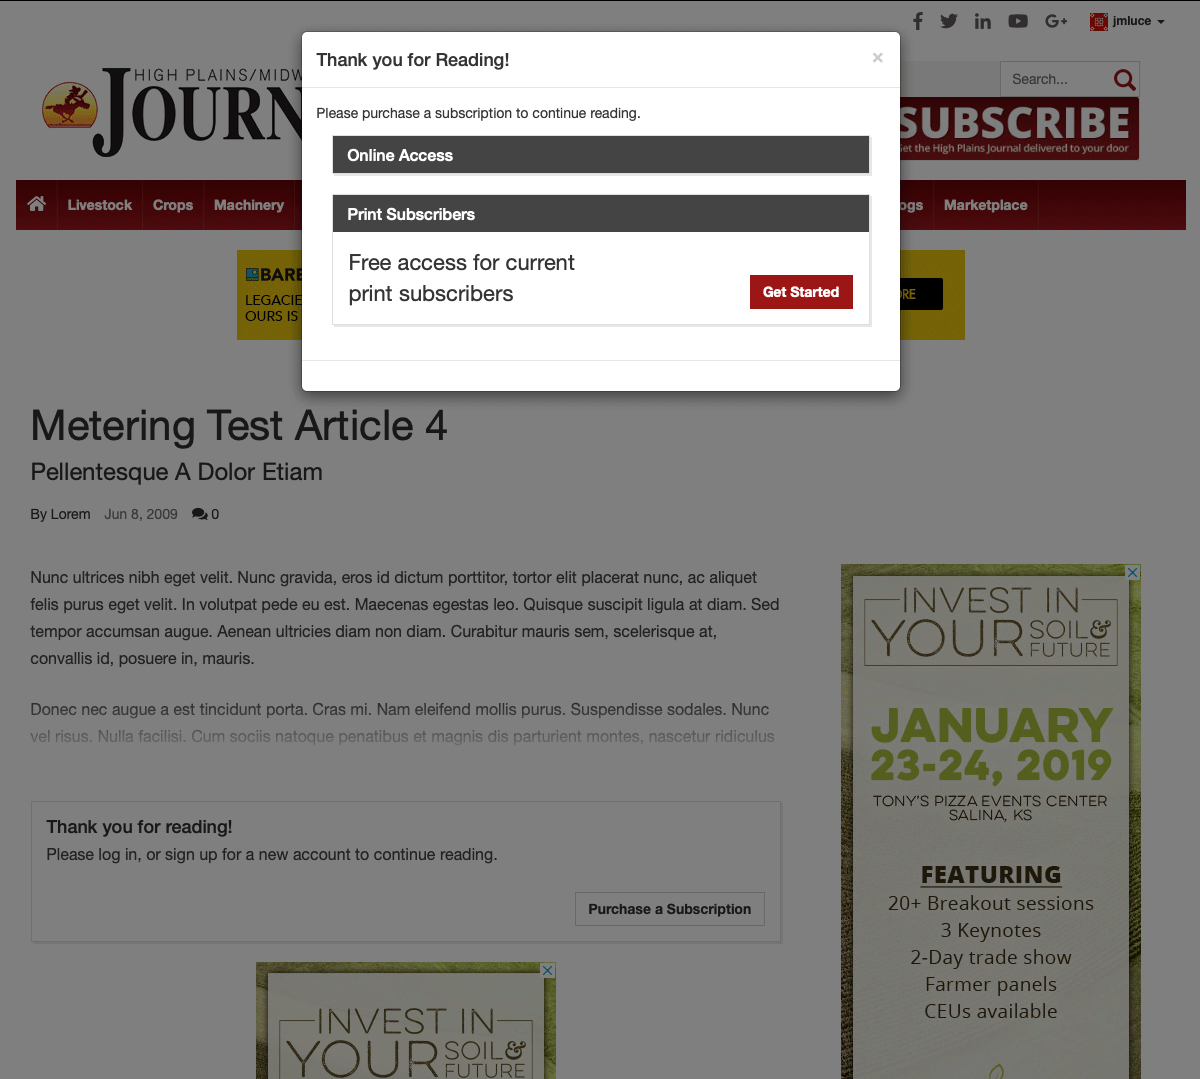 Existing Print Subscribers Free Access